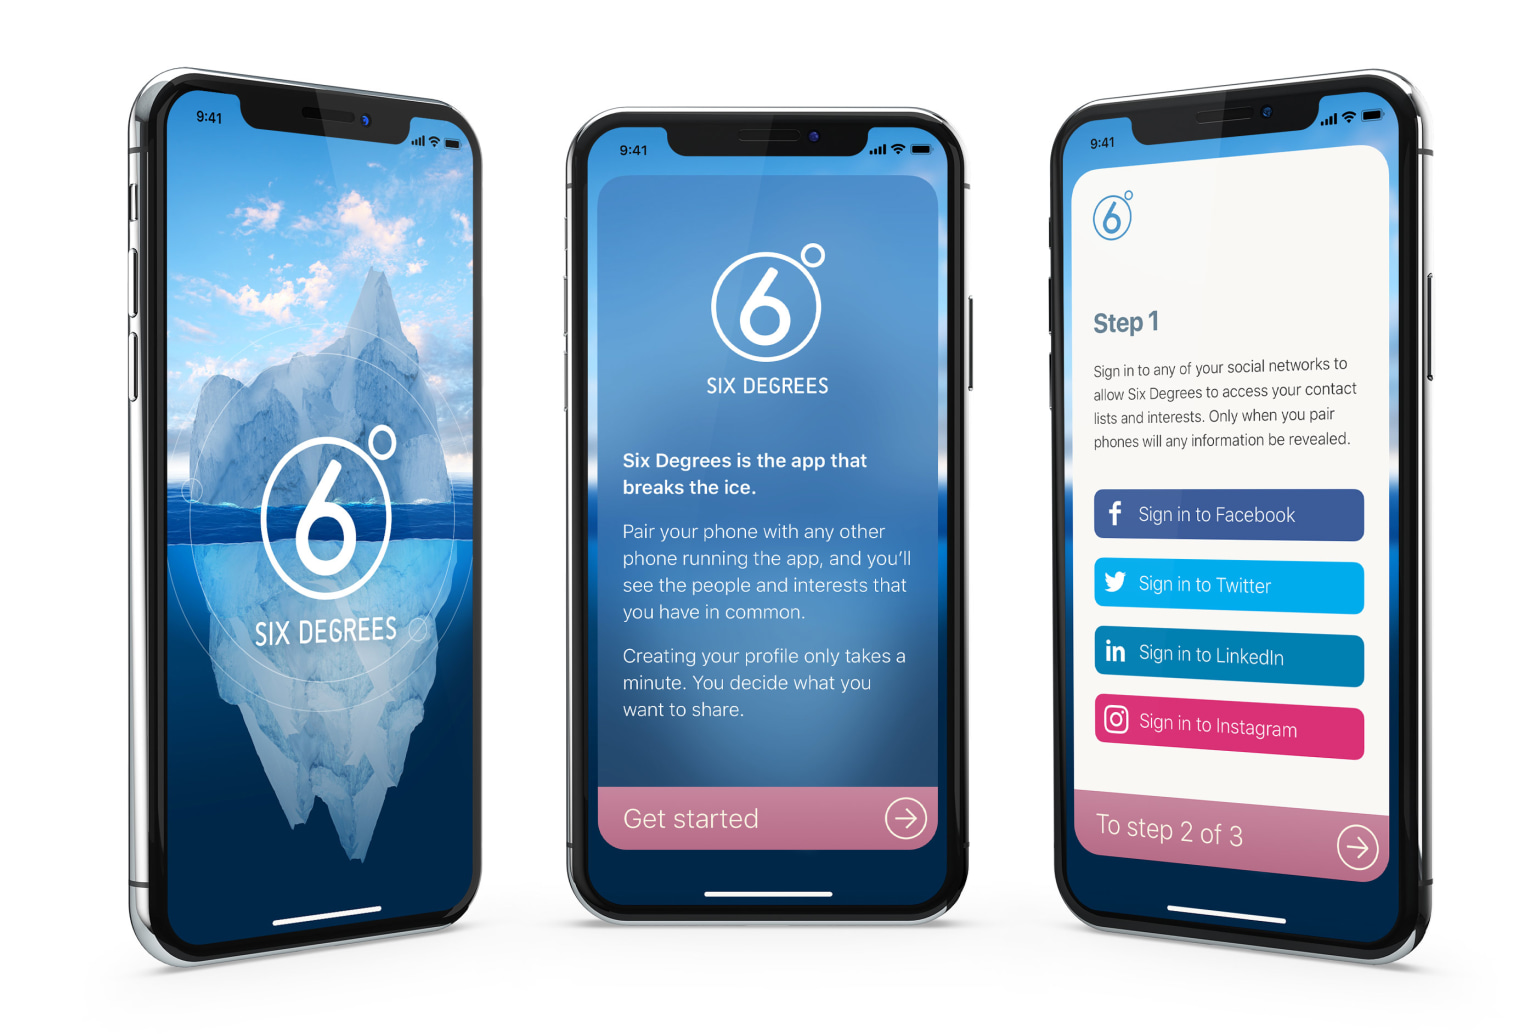 6 degrees networking app